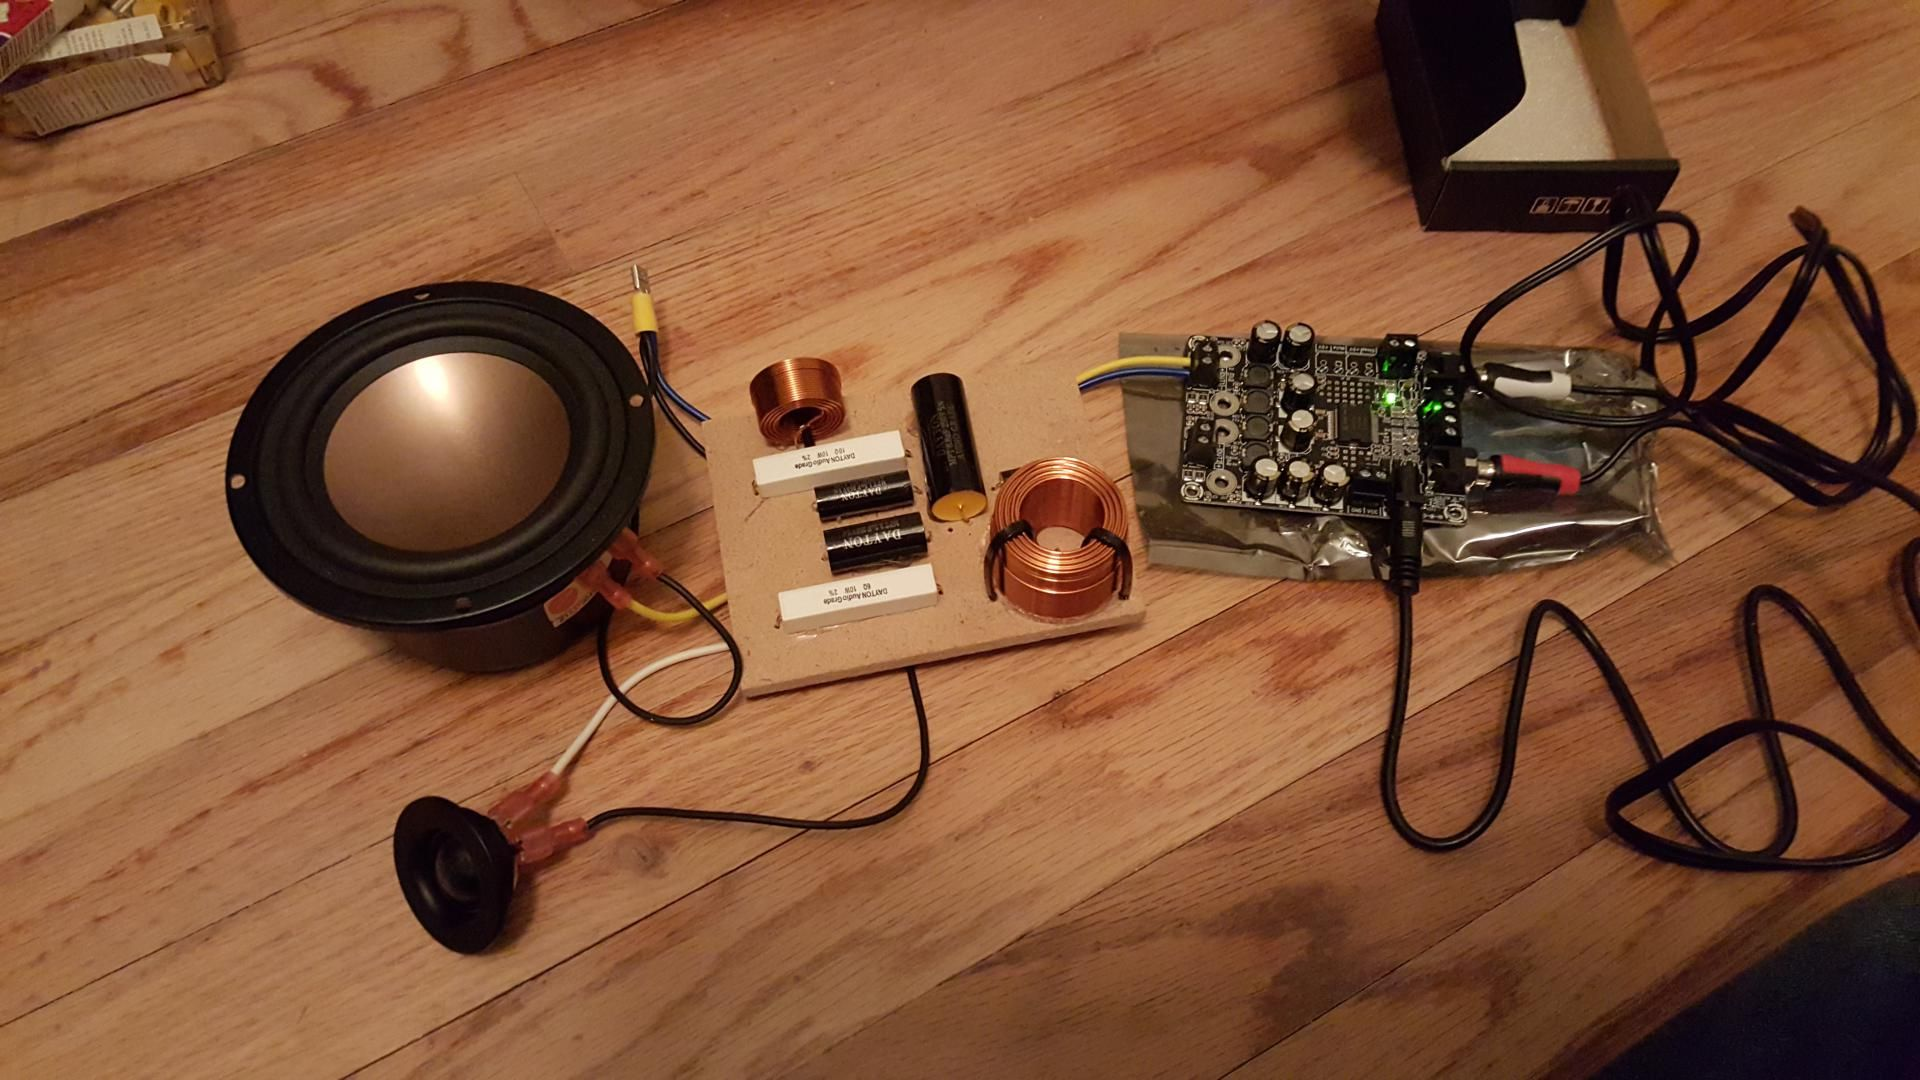 Help With First Build Bluetooth Speaker Diy Bluetooth Speaker Speaker Projects Speaker